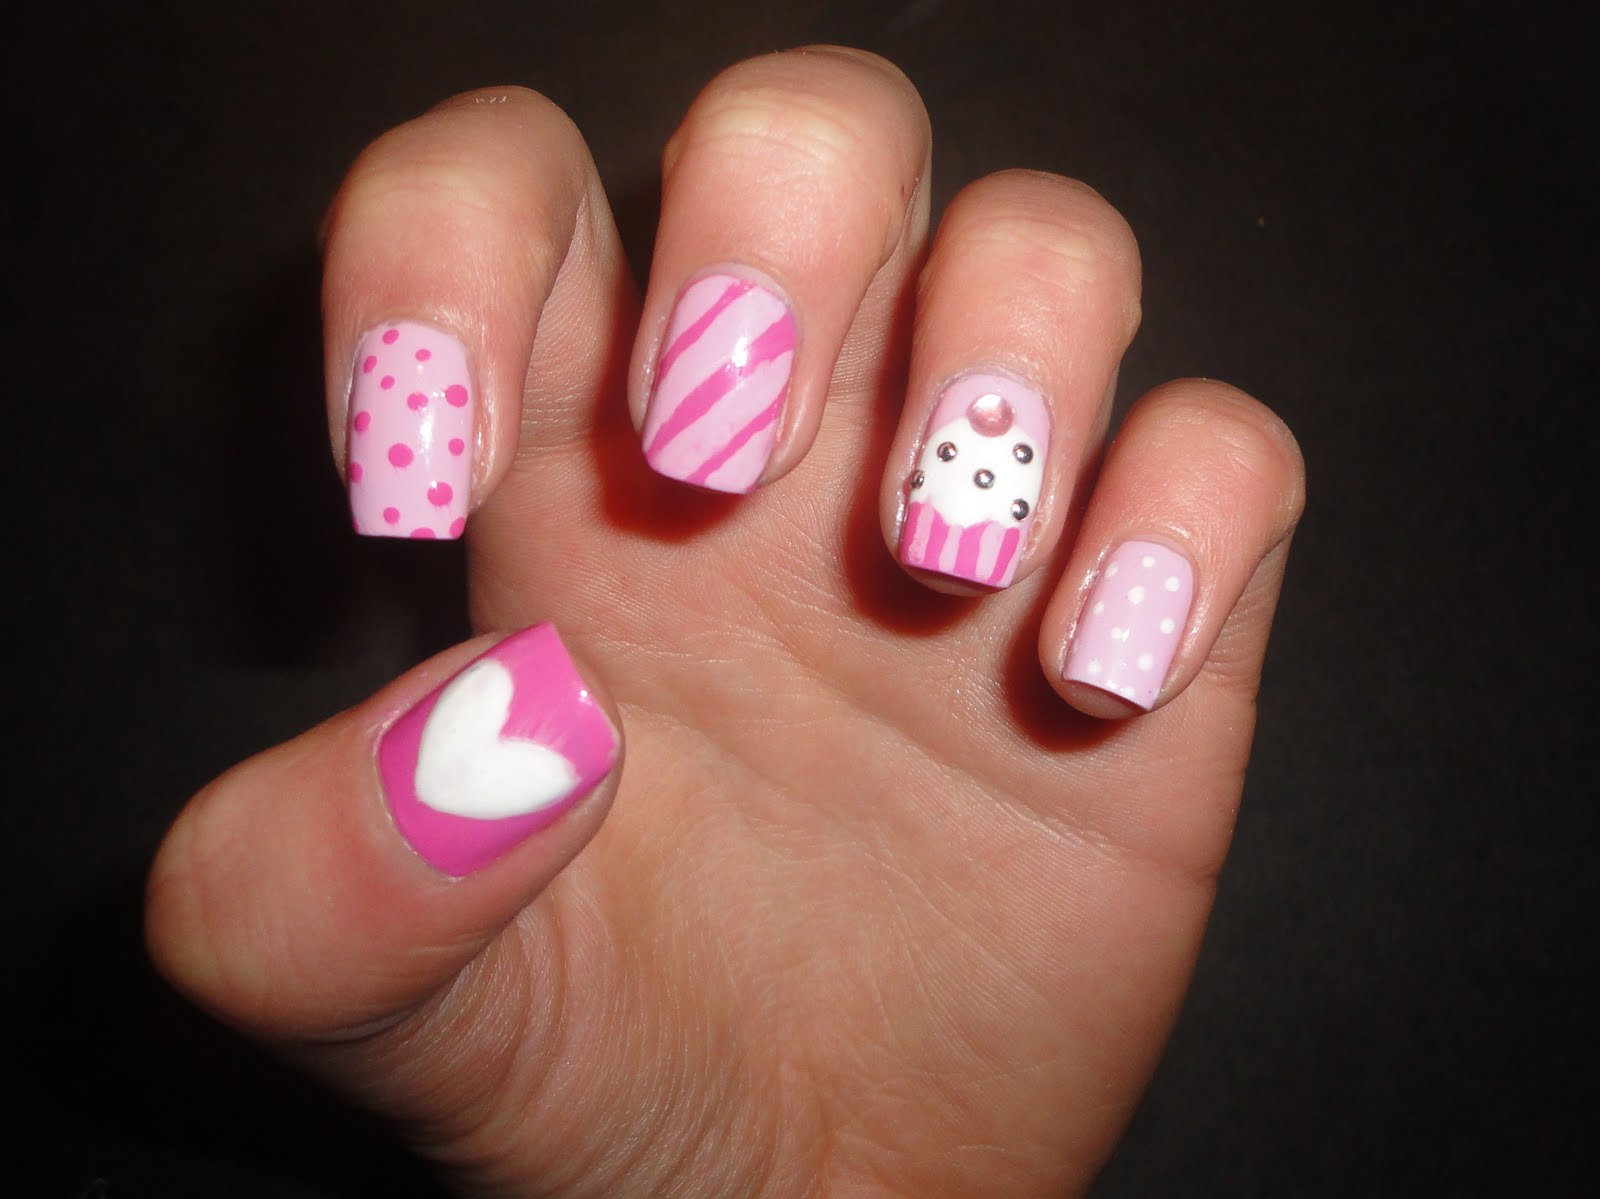 20 Happy Birthday Nail Art Ideas  Designs For Girls 2013  Girlshue